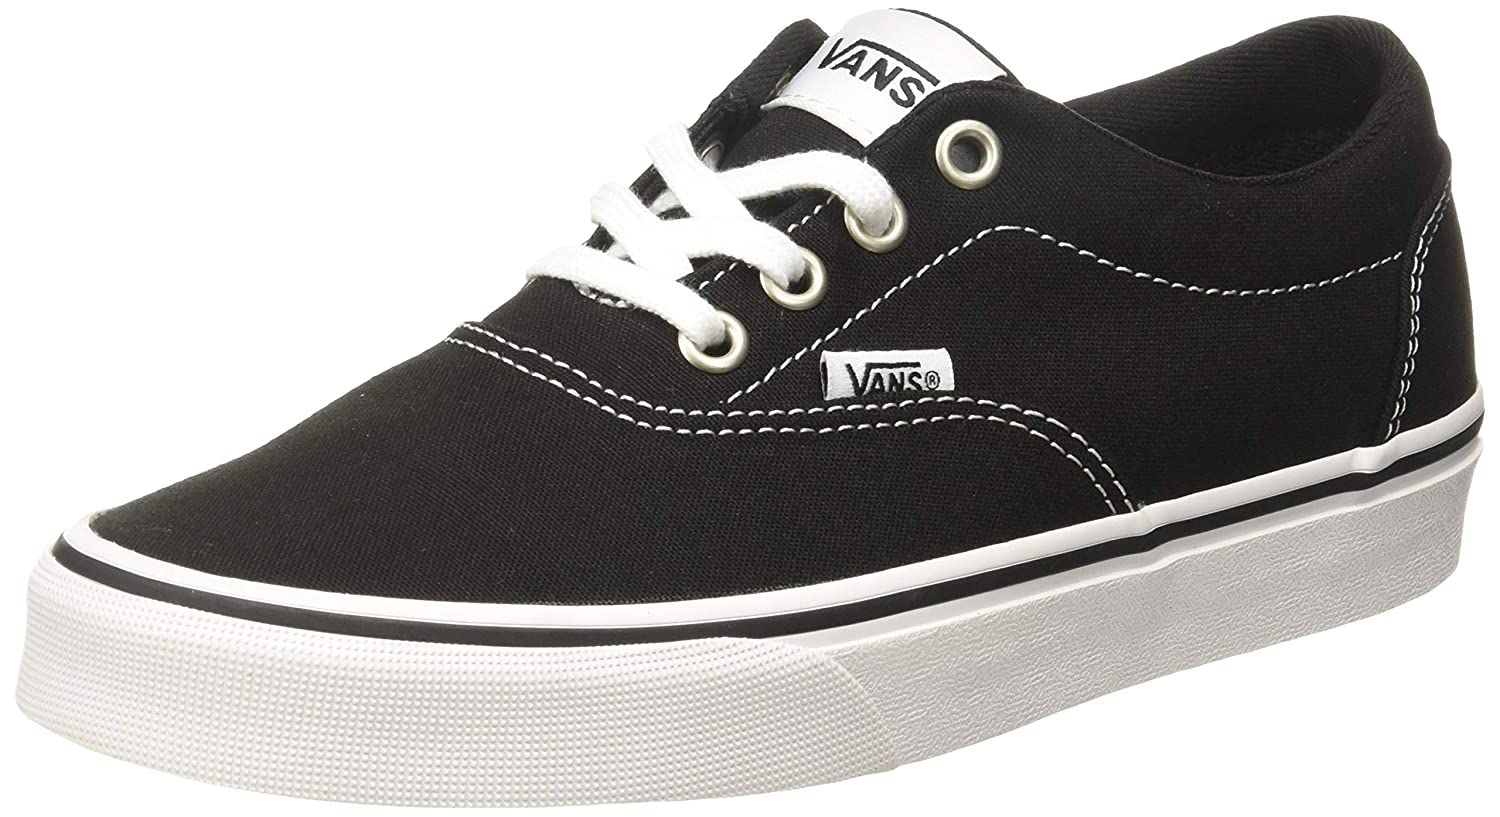 d11f2a3a792b75 Vans Women s Doheny Sneakers  Buy Online at Low Prices in India - Amazon.in